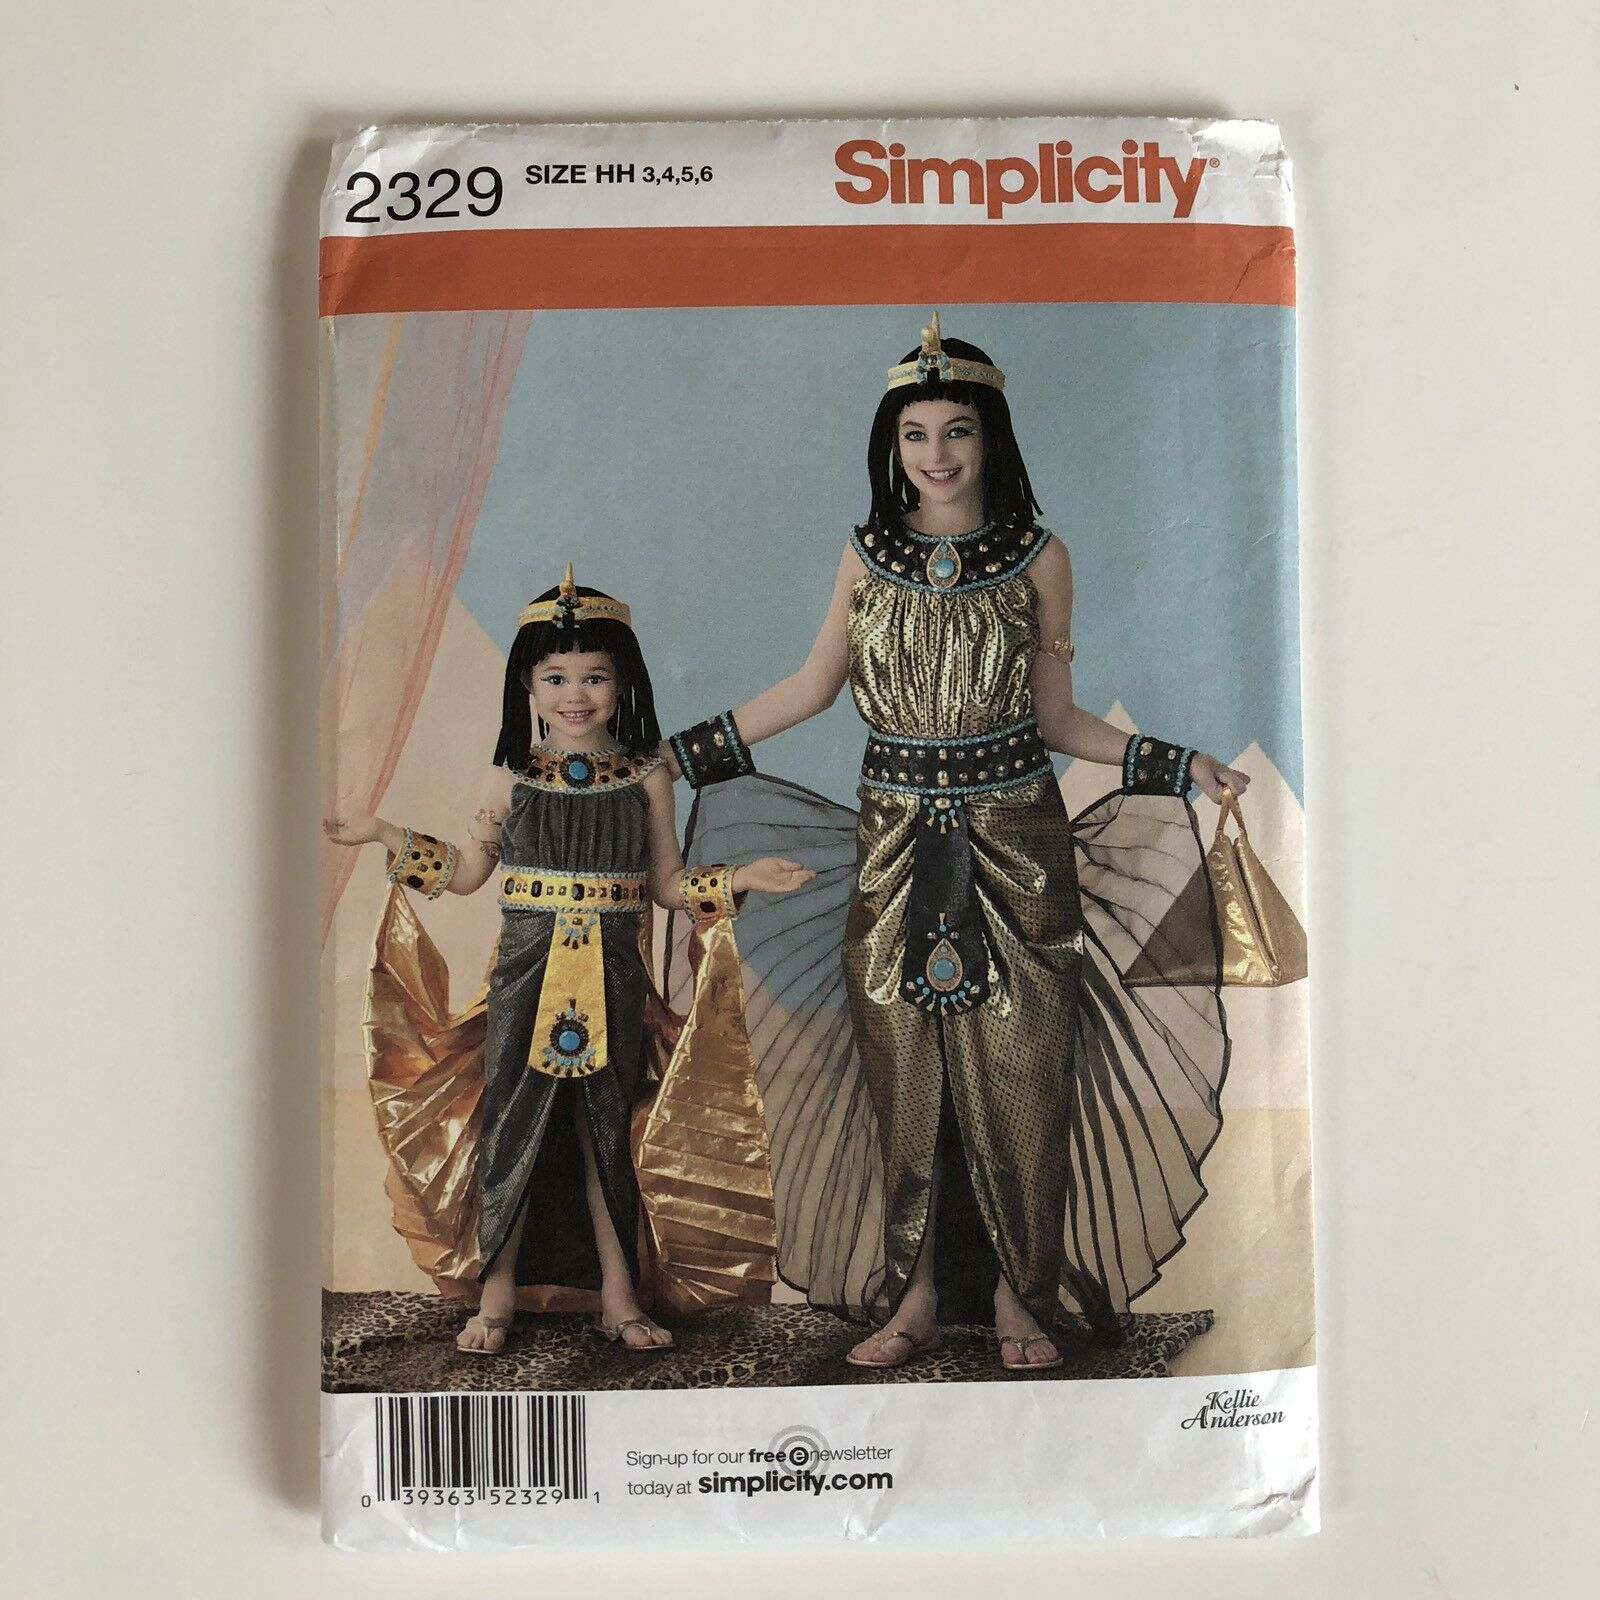 3-4-5-6 HH Simplicity Sewing Pattern 2329 Childs and Girls Costumes